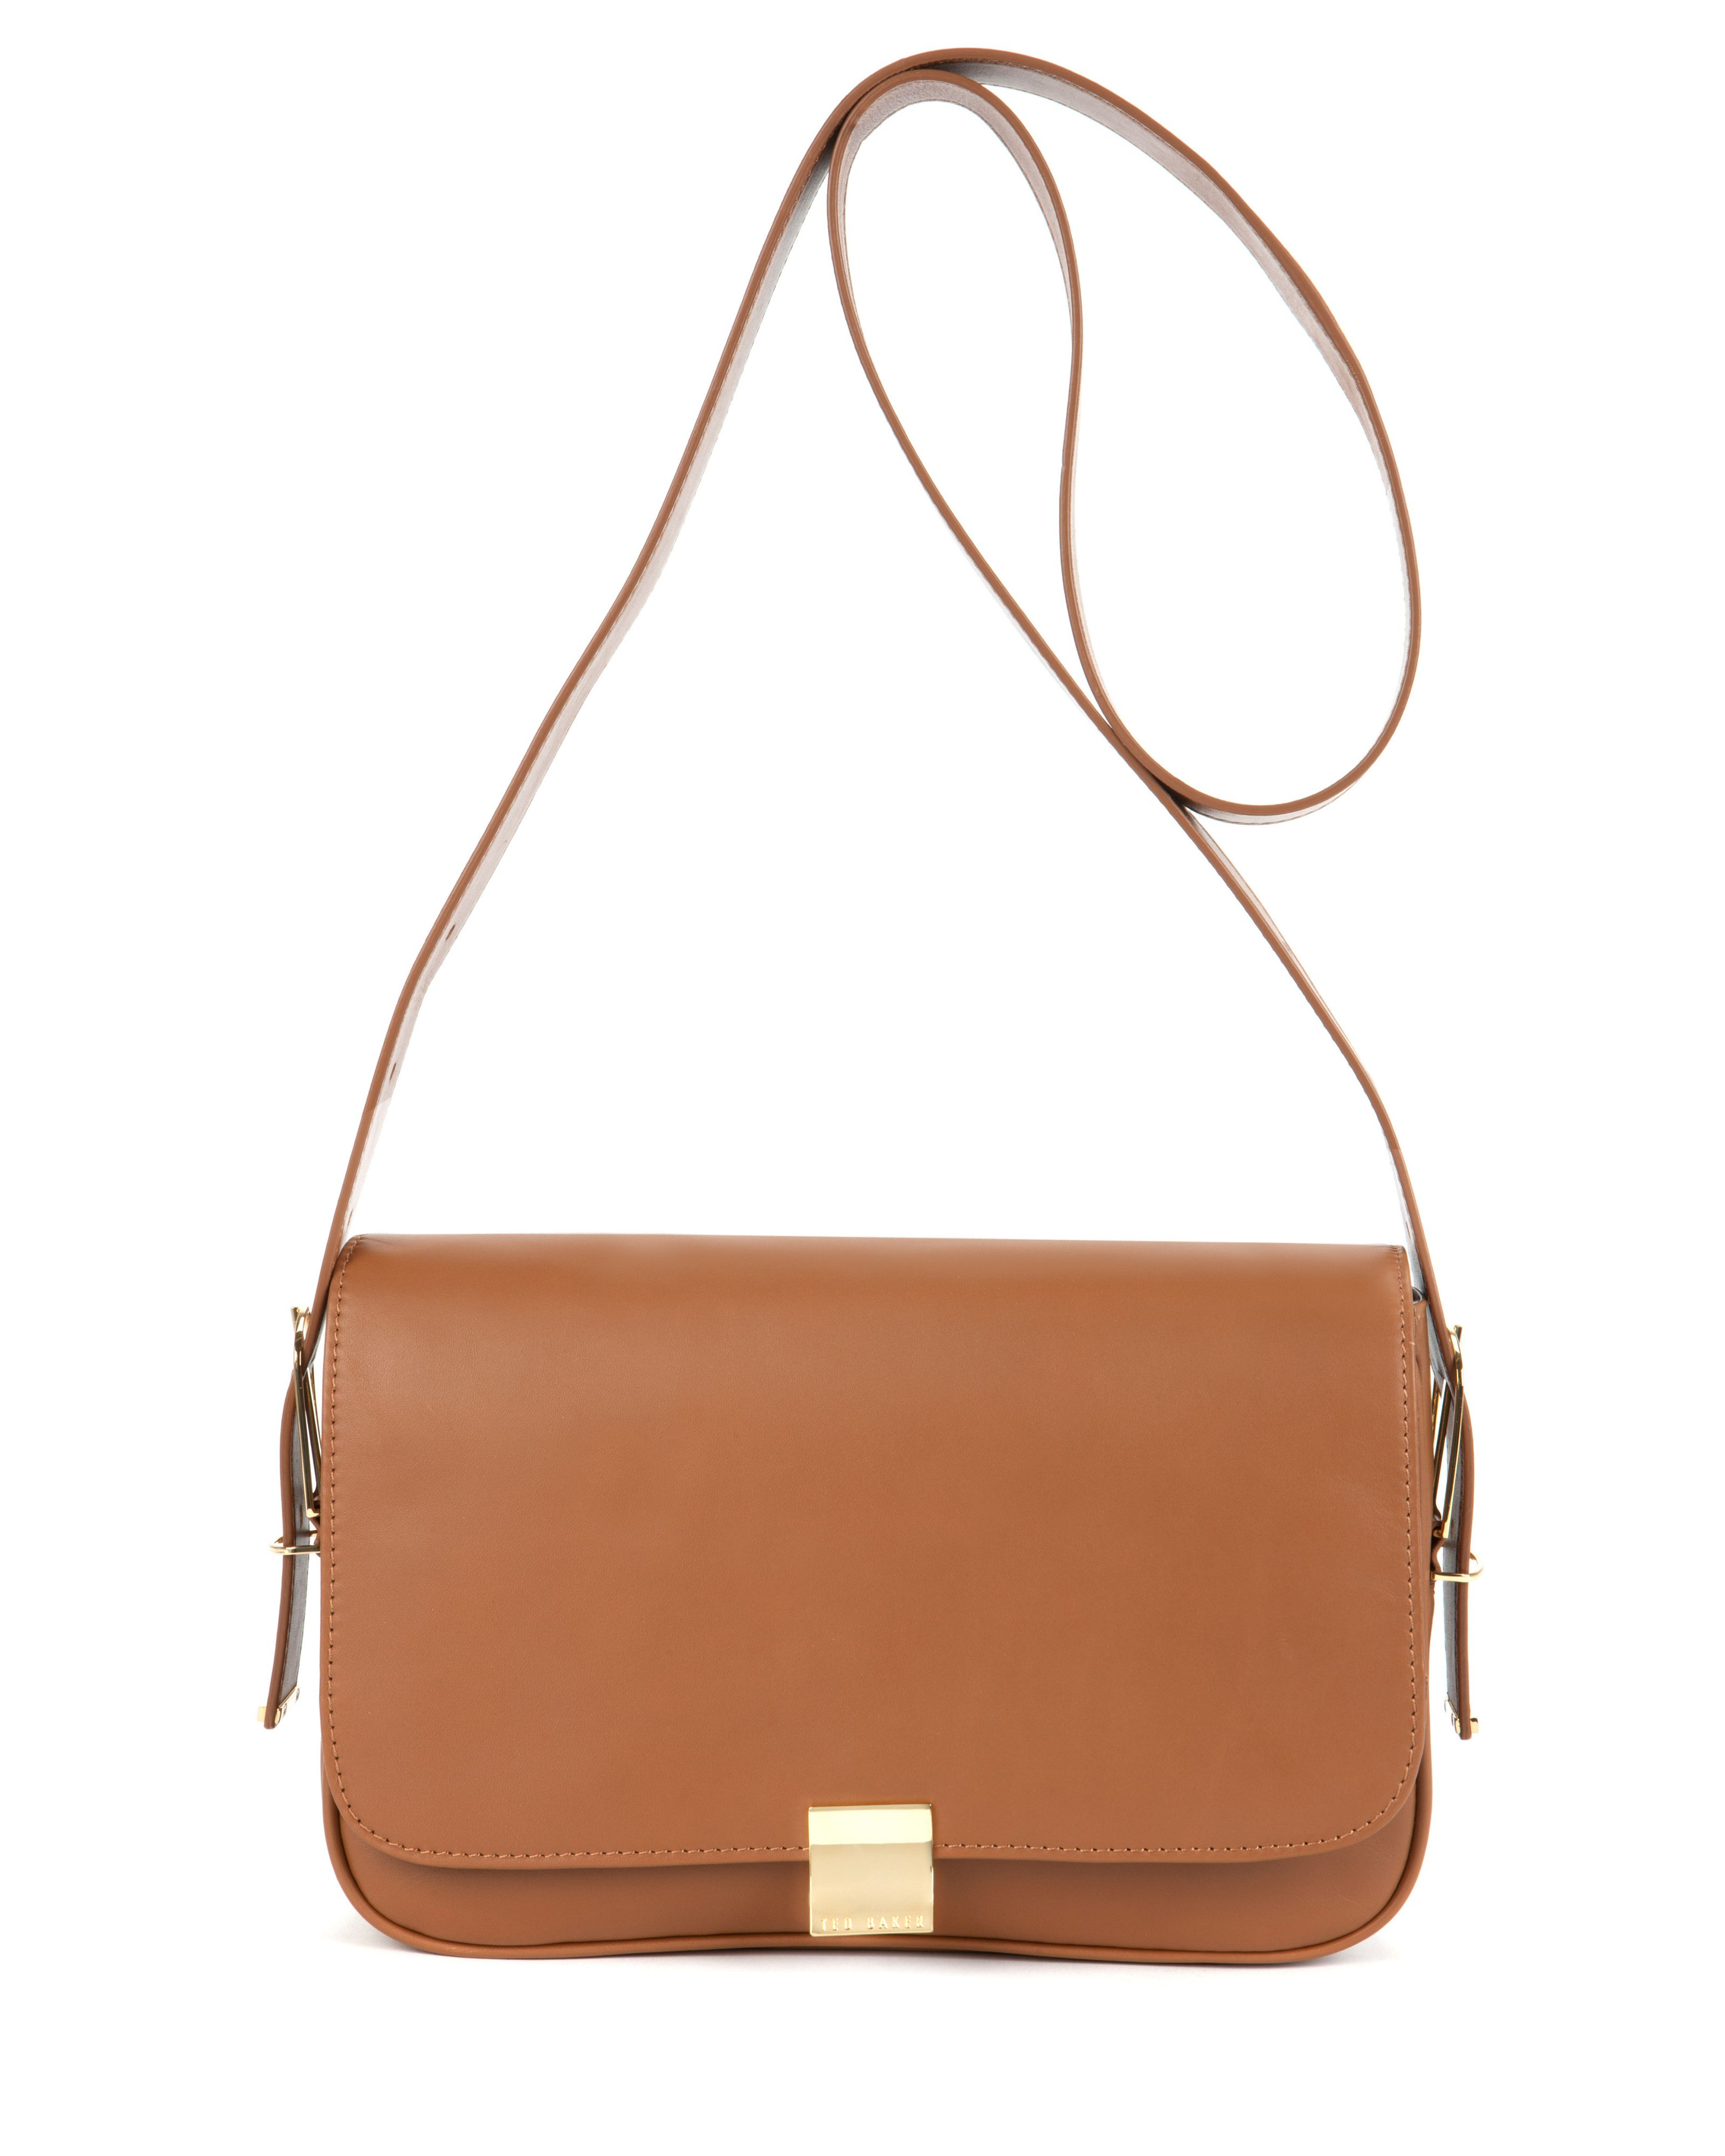 Ted baker Tisabel Leather Sling Bag in Brown | Lyst